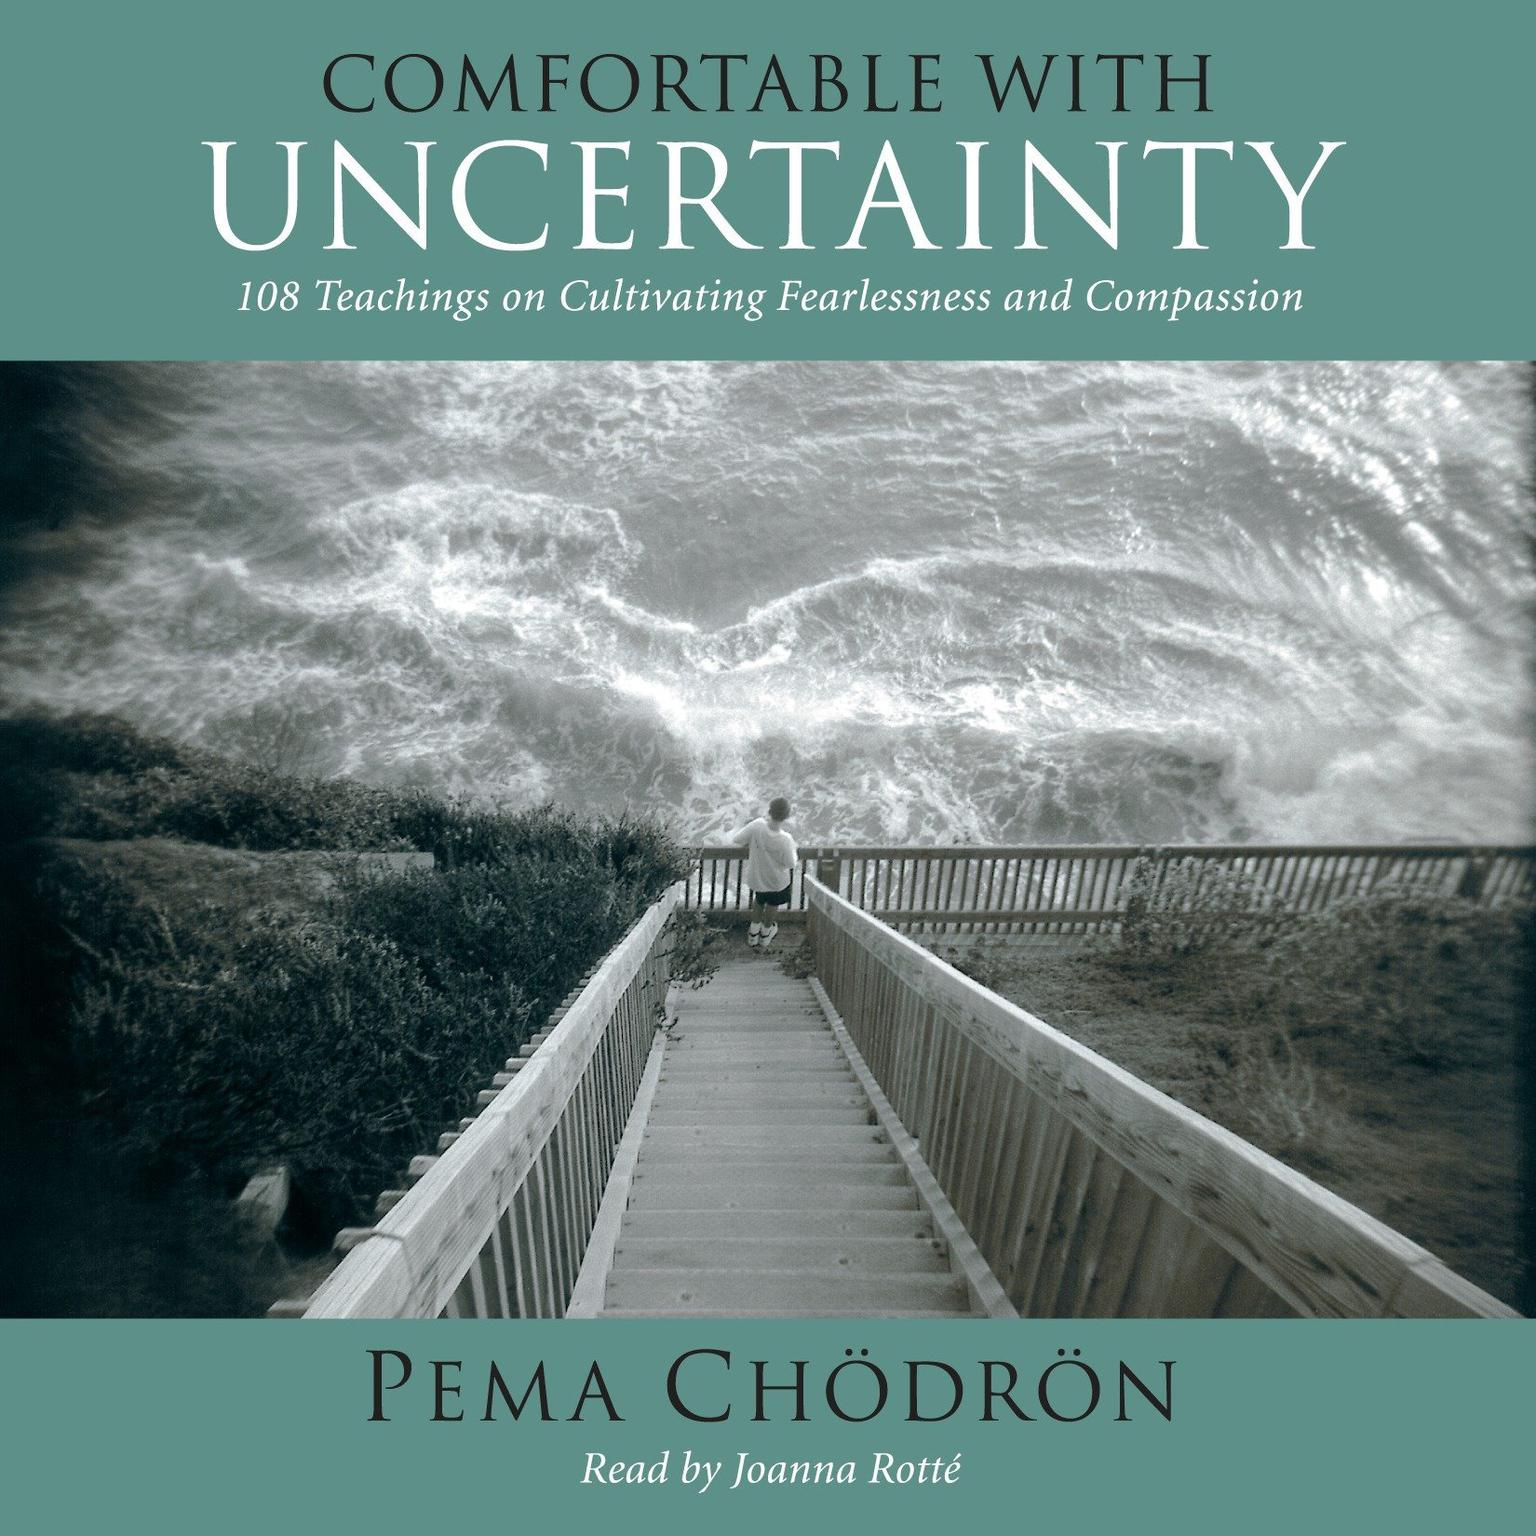 Comfortable with Uncertainty: 108 Teachings on Cultivating Fearlessness and Compassion Audiobook, by Pema Chödrön